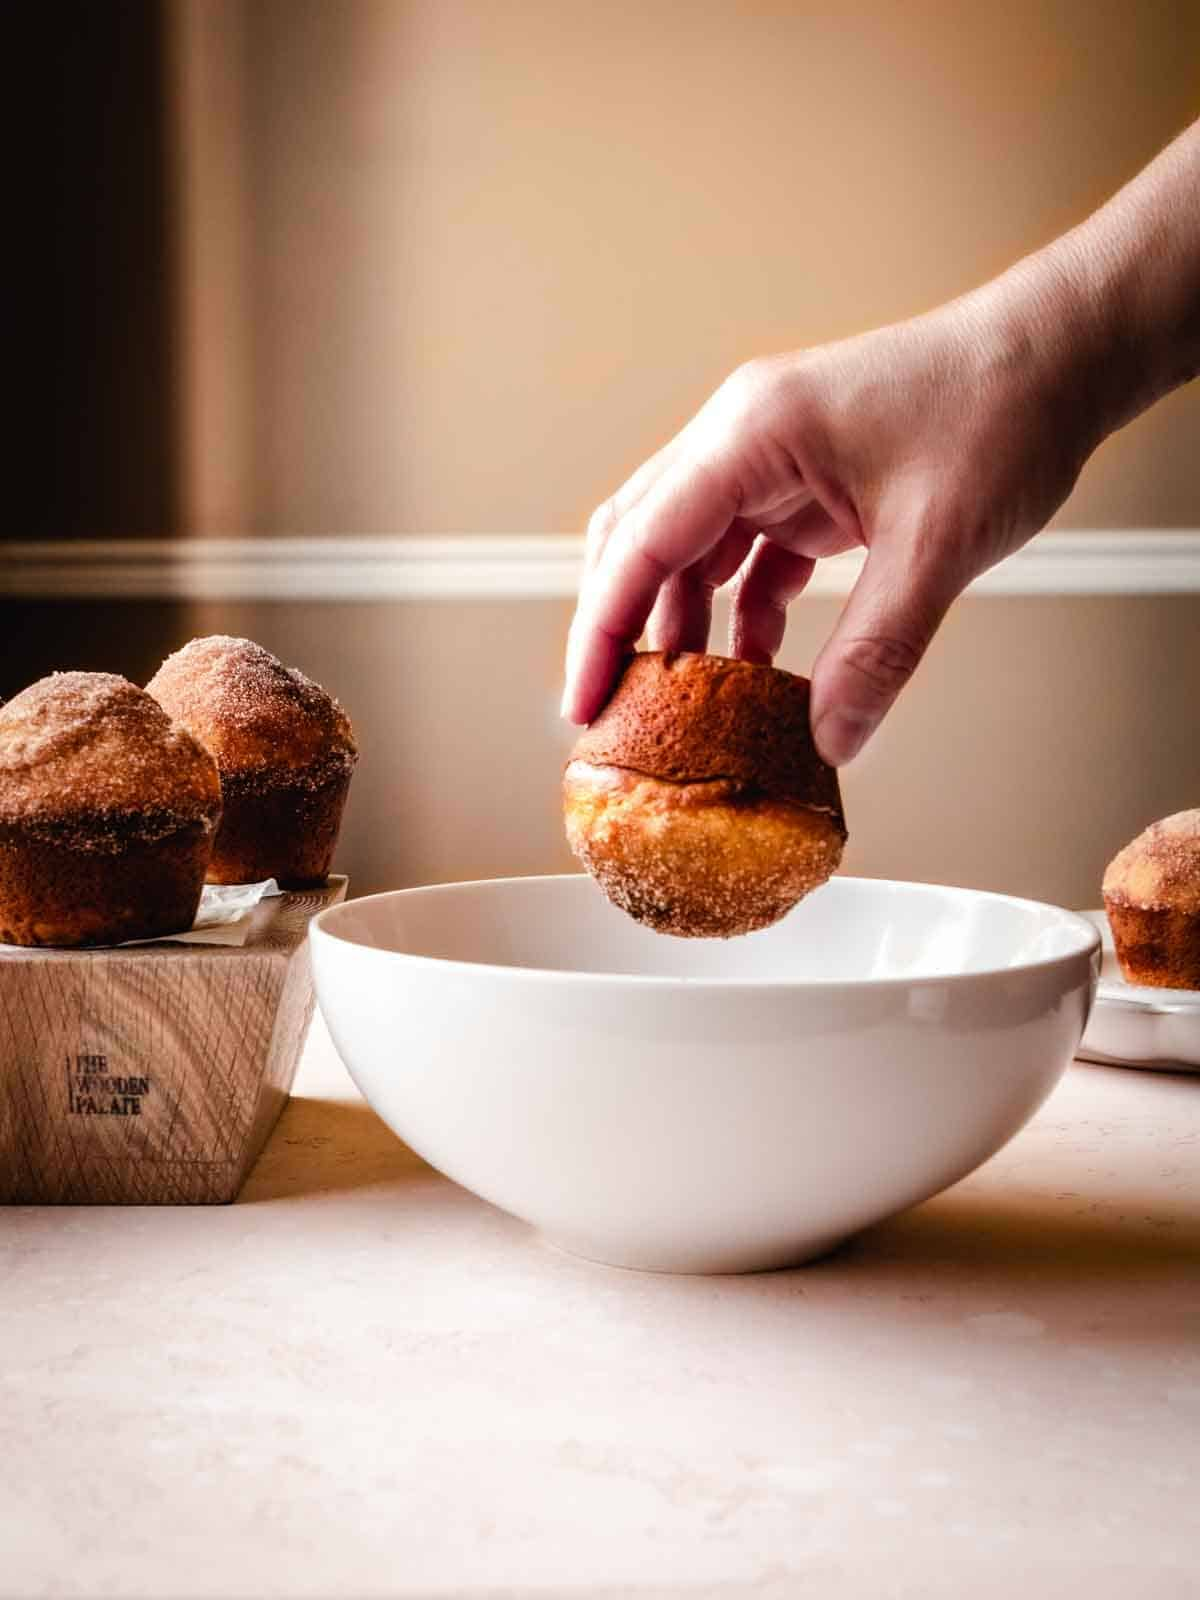 dipping donut muffin in melted butter and cinnamon sugar